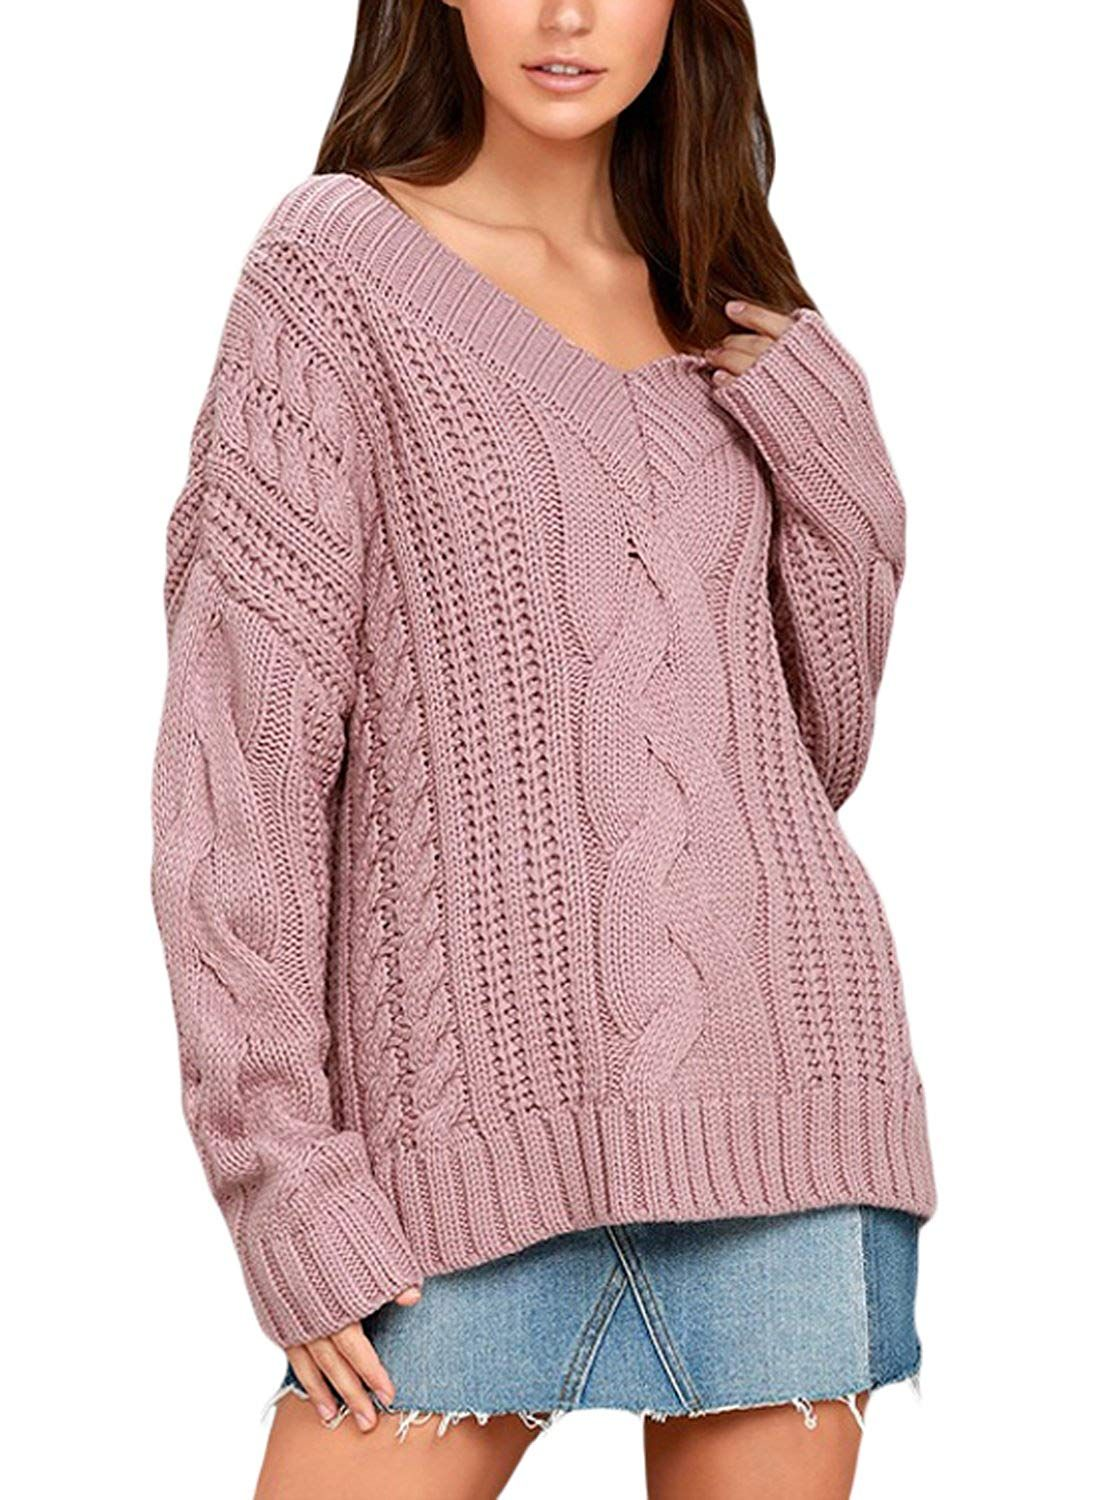 61aaf2aafc78 Sidefeel Women Casual V Neck Loose Fit Knit Sweater Pullover Top at Amazon Women s  Clothing store